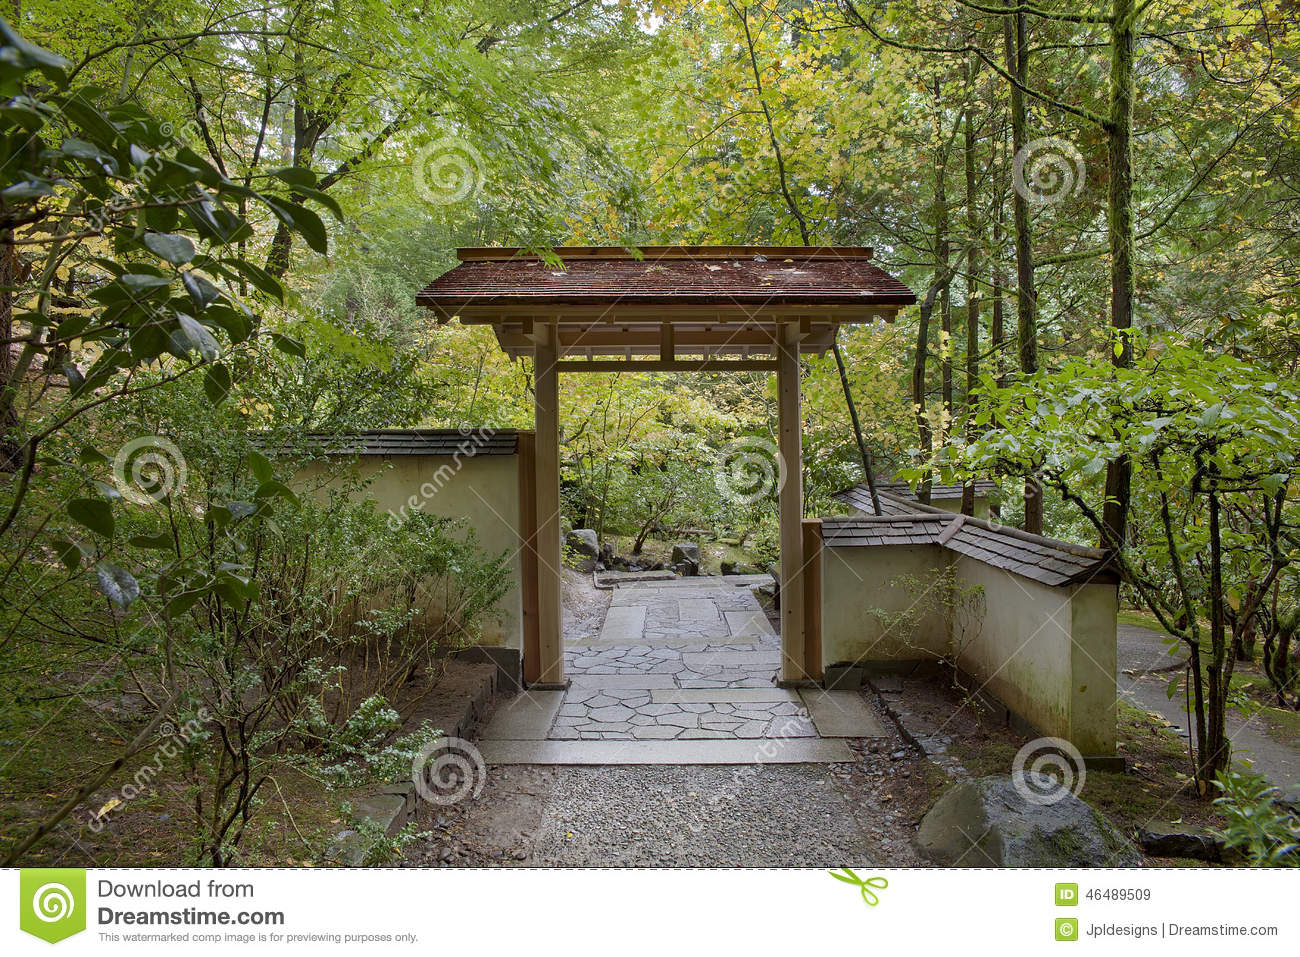 Entryway at japanese garden in autumn season stock photo for Entryway garden designs